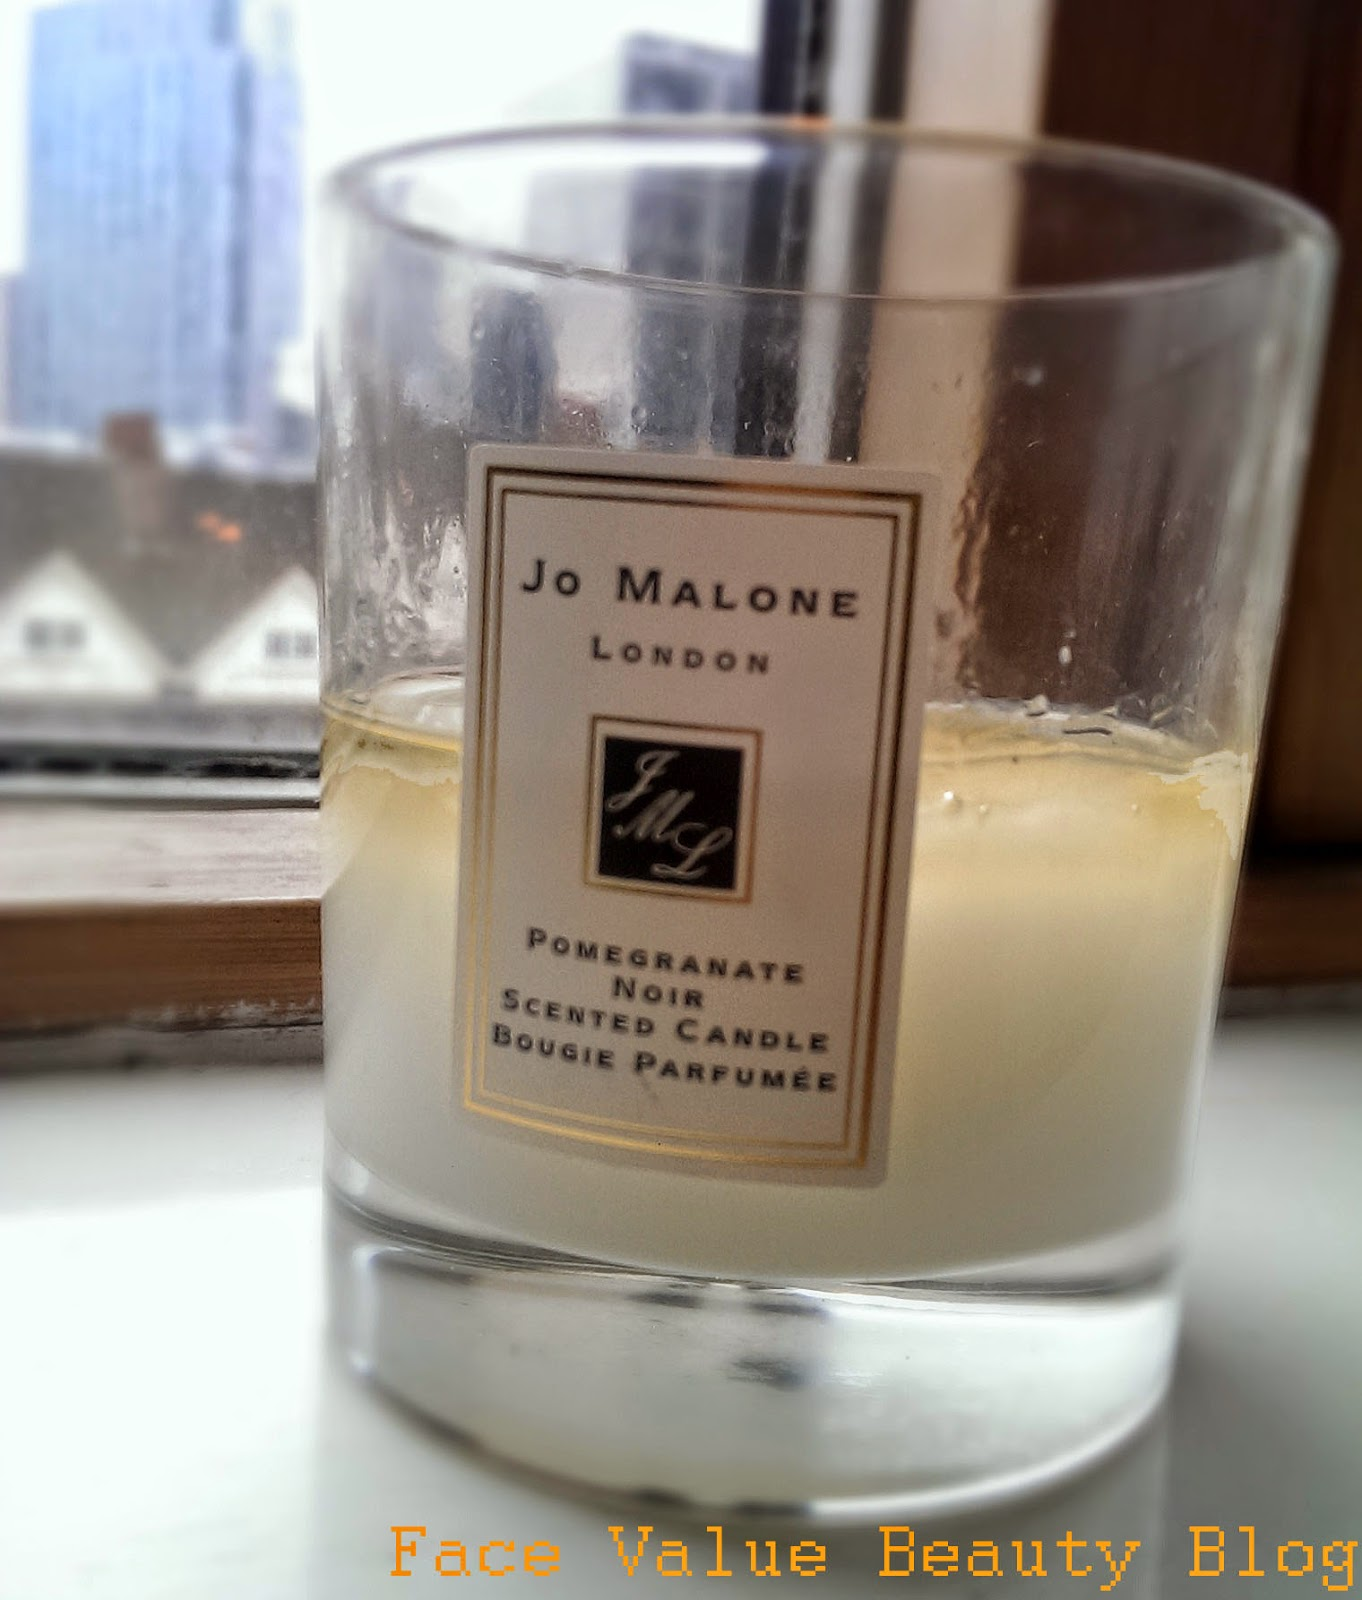 Face Value Beauty Blog Things You Need To Know About Scented Candles